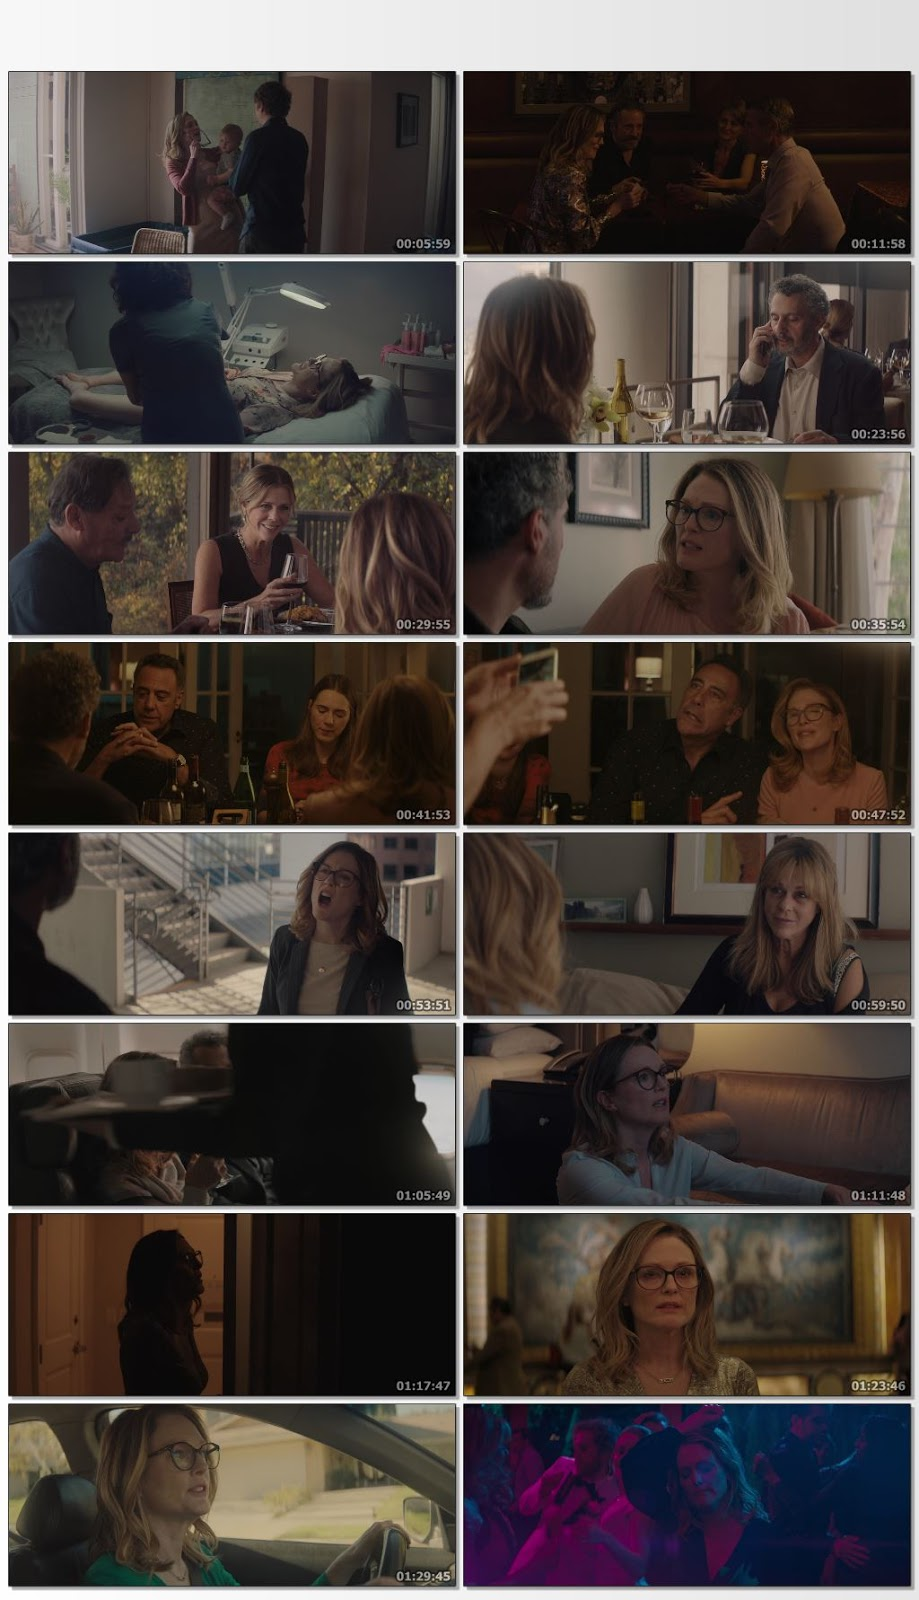 Gloria Bell 2018 English 720p BRRip ESubs 950MB Desirehub